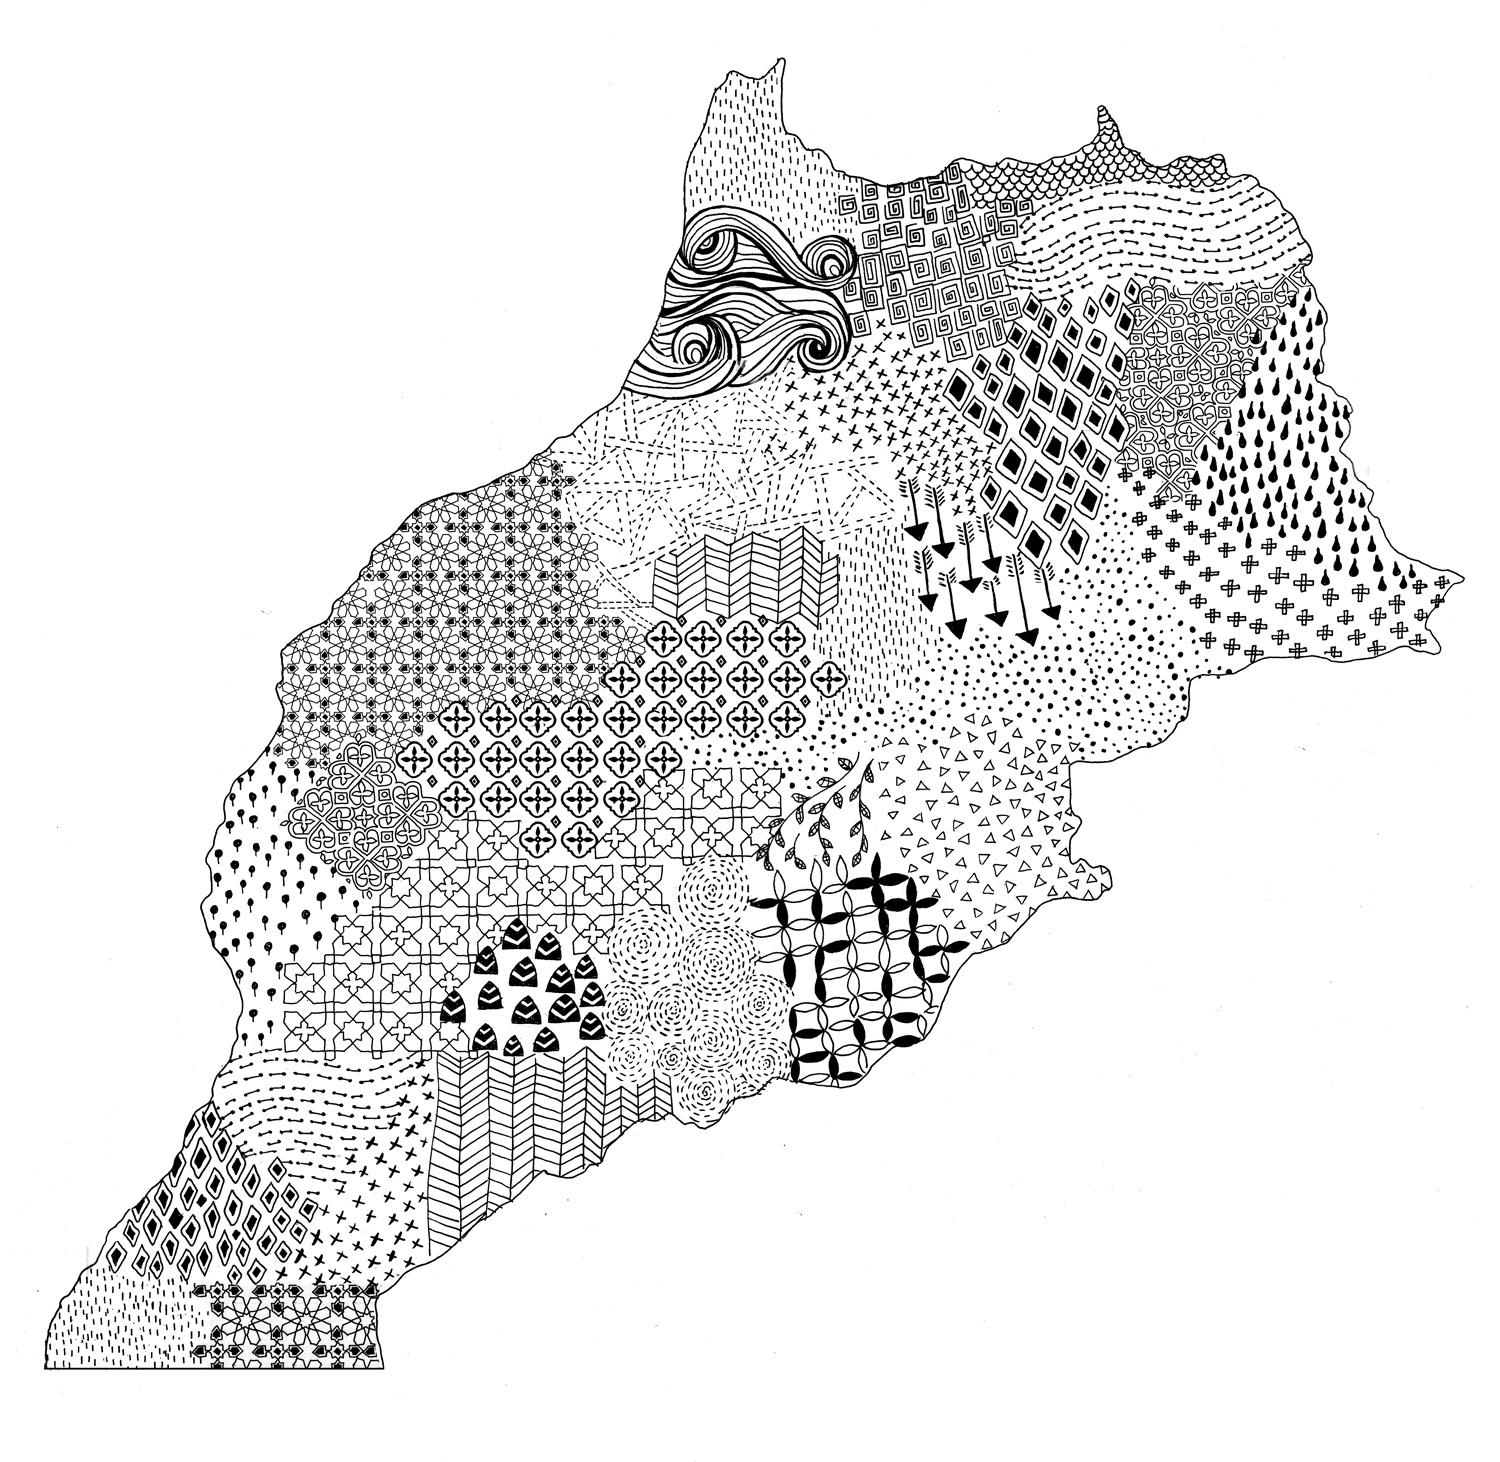 Berber Whiskey Travels: Morocco through patterns - image 5 - student project